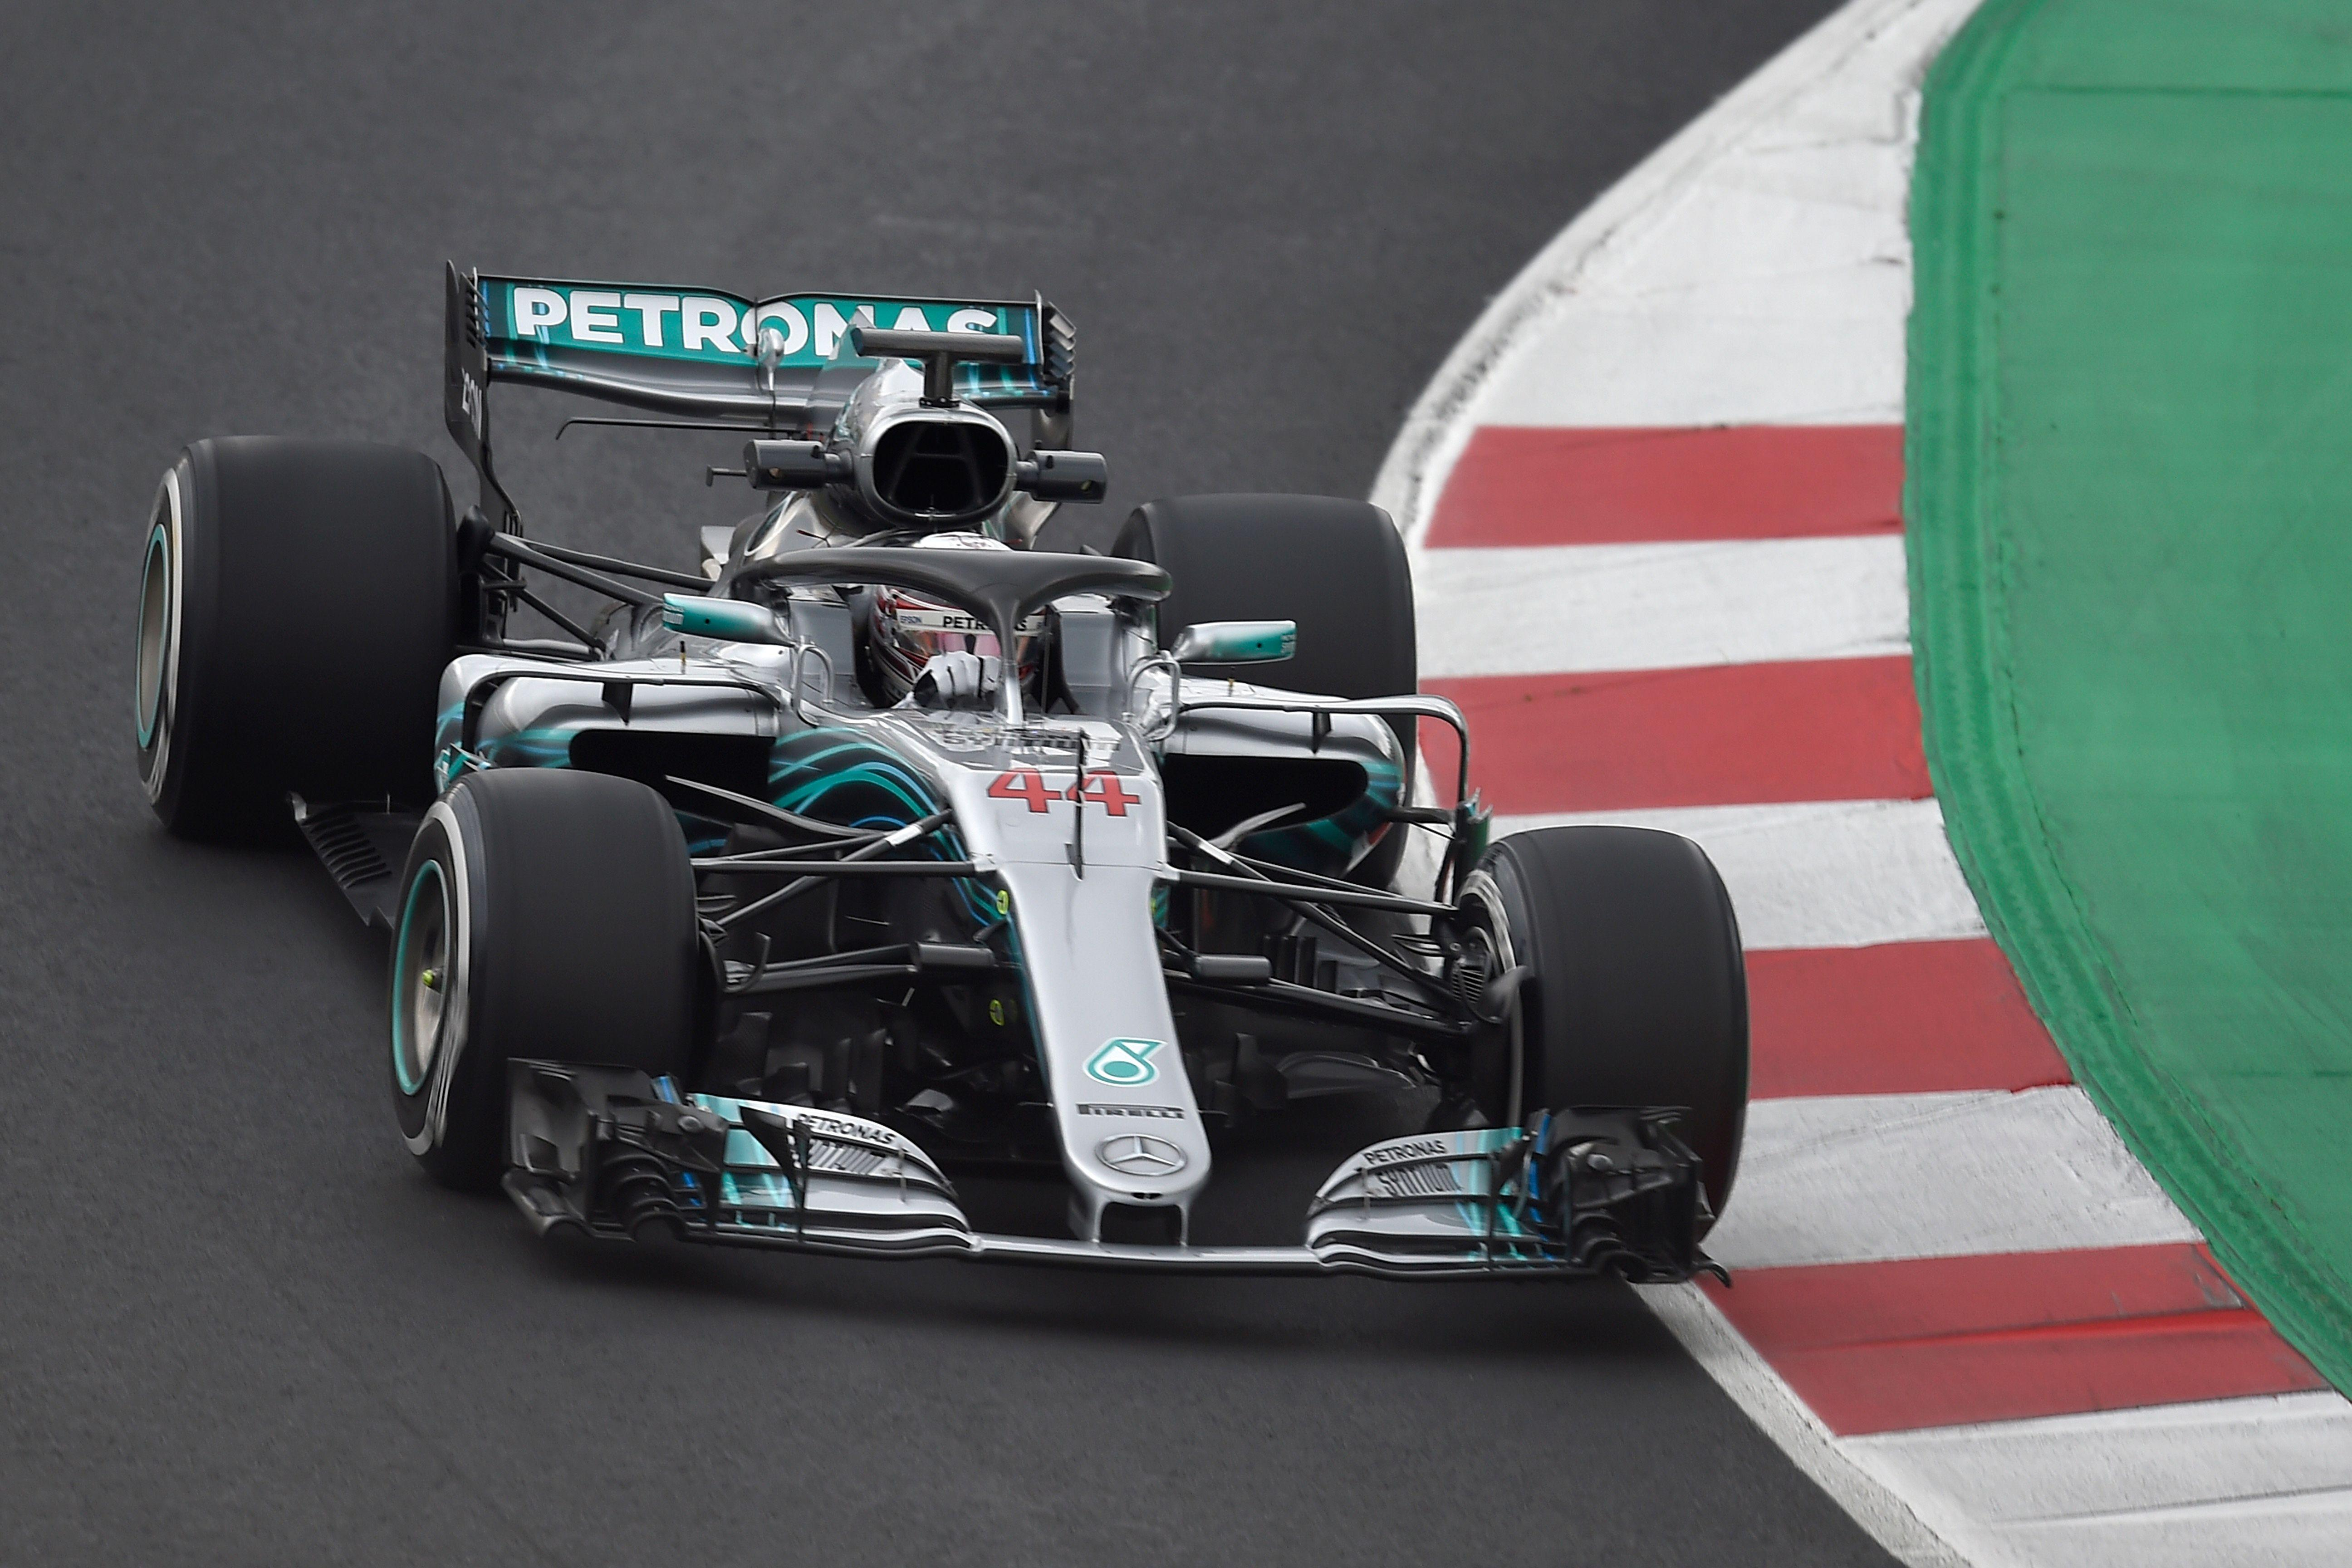 Lewis Hamilton has only mustered 25 laps over three days at the Circuit de Catalunya